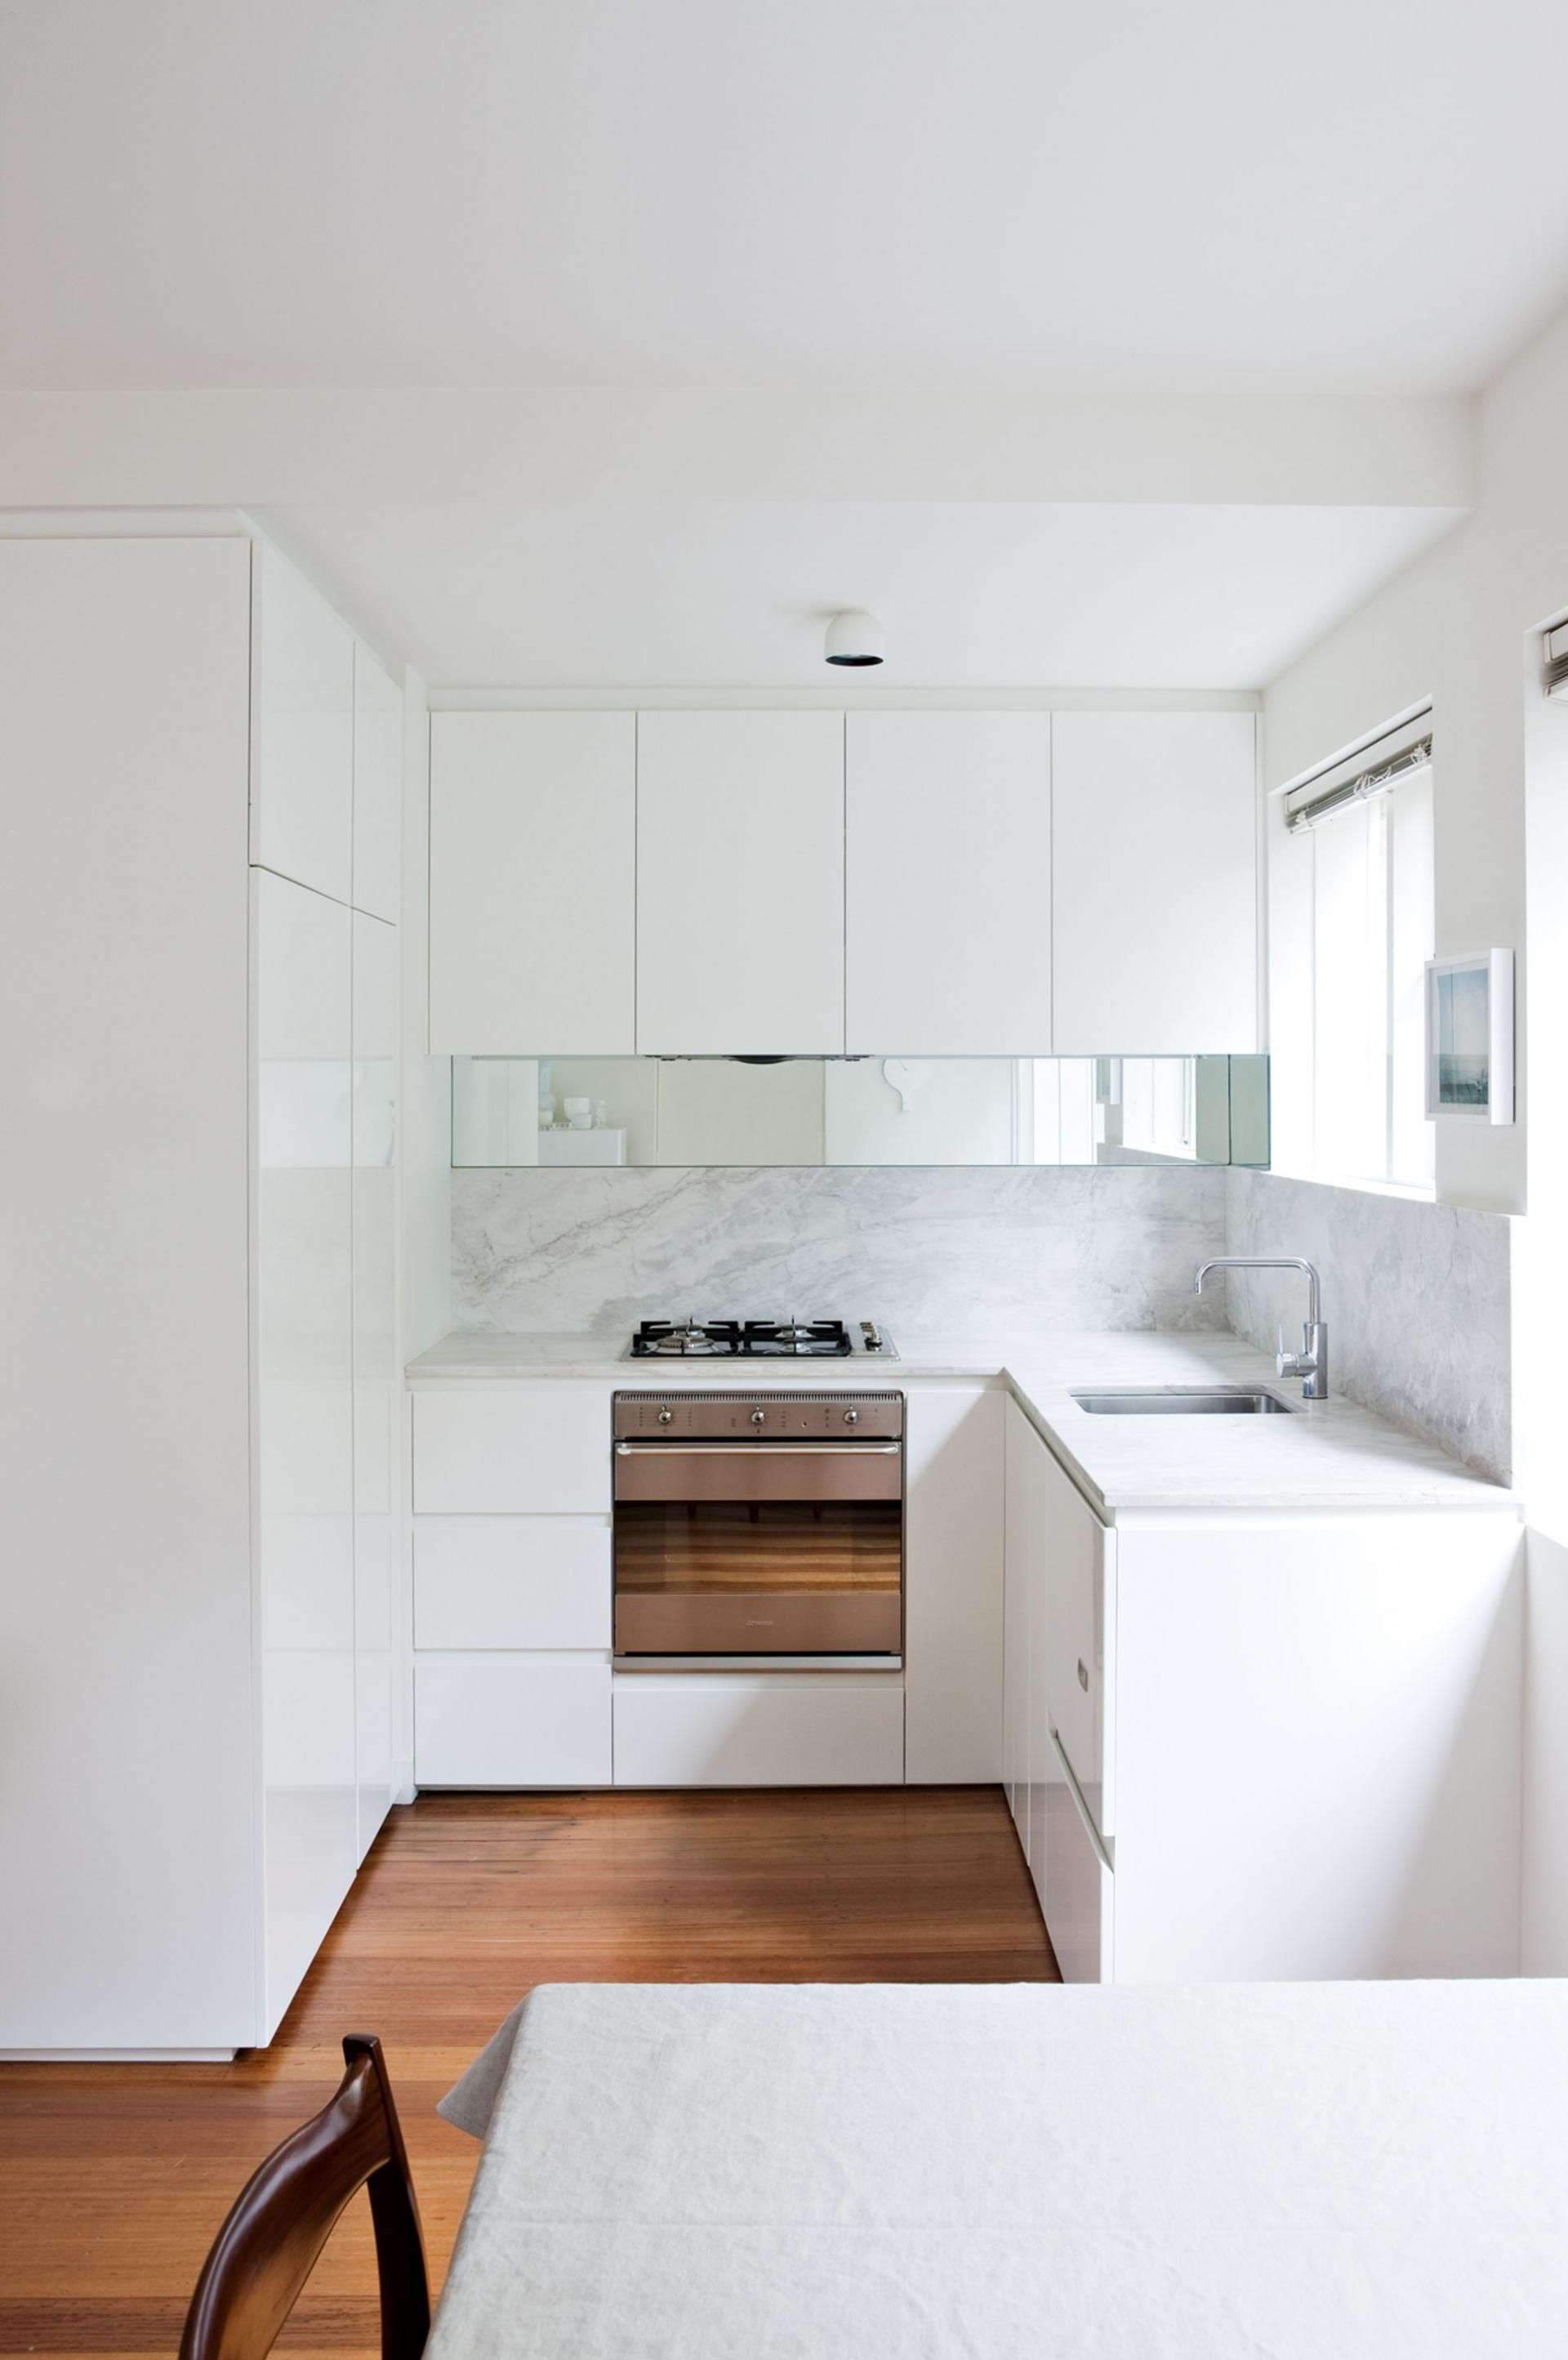 Small kitchen design ideas graphy by Jason Busch Styling by